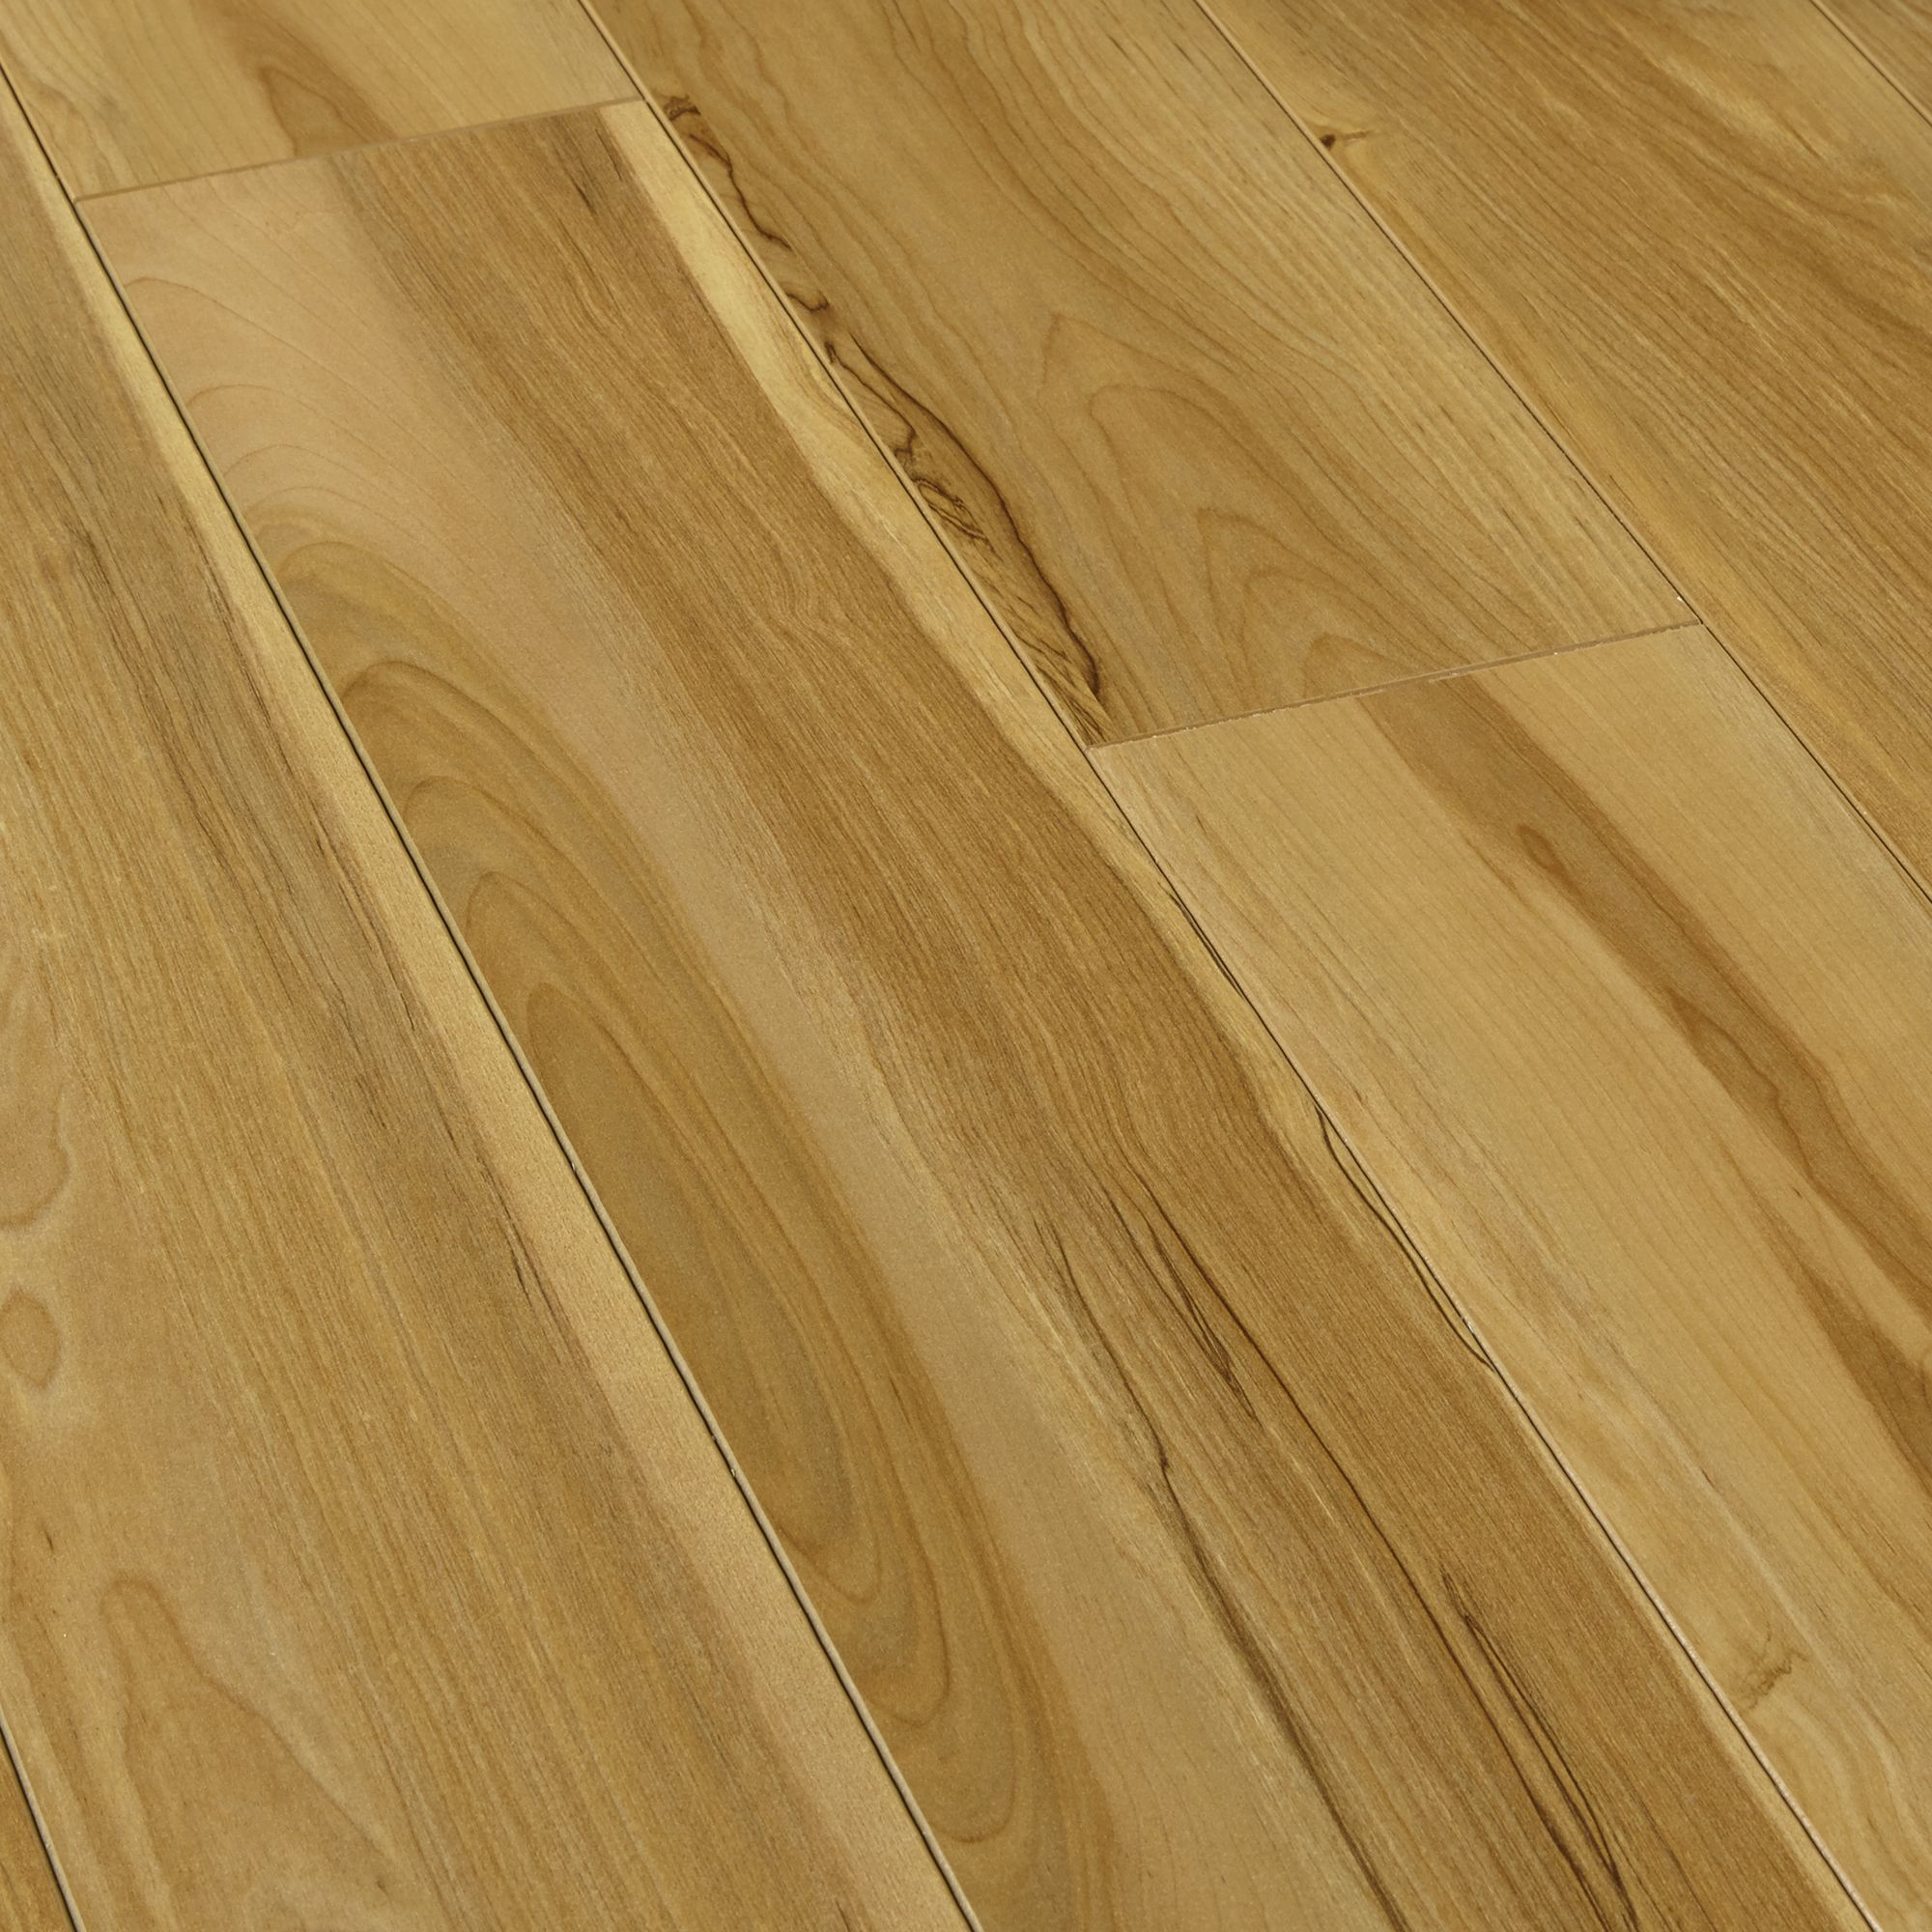 Scherzo natural light walnut effect laminate flooring for Laminate floor panels